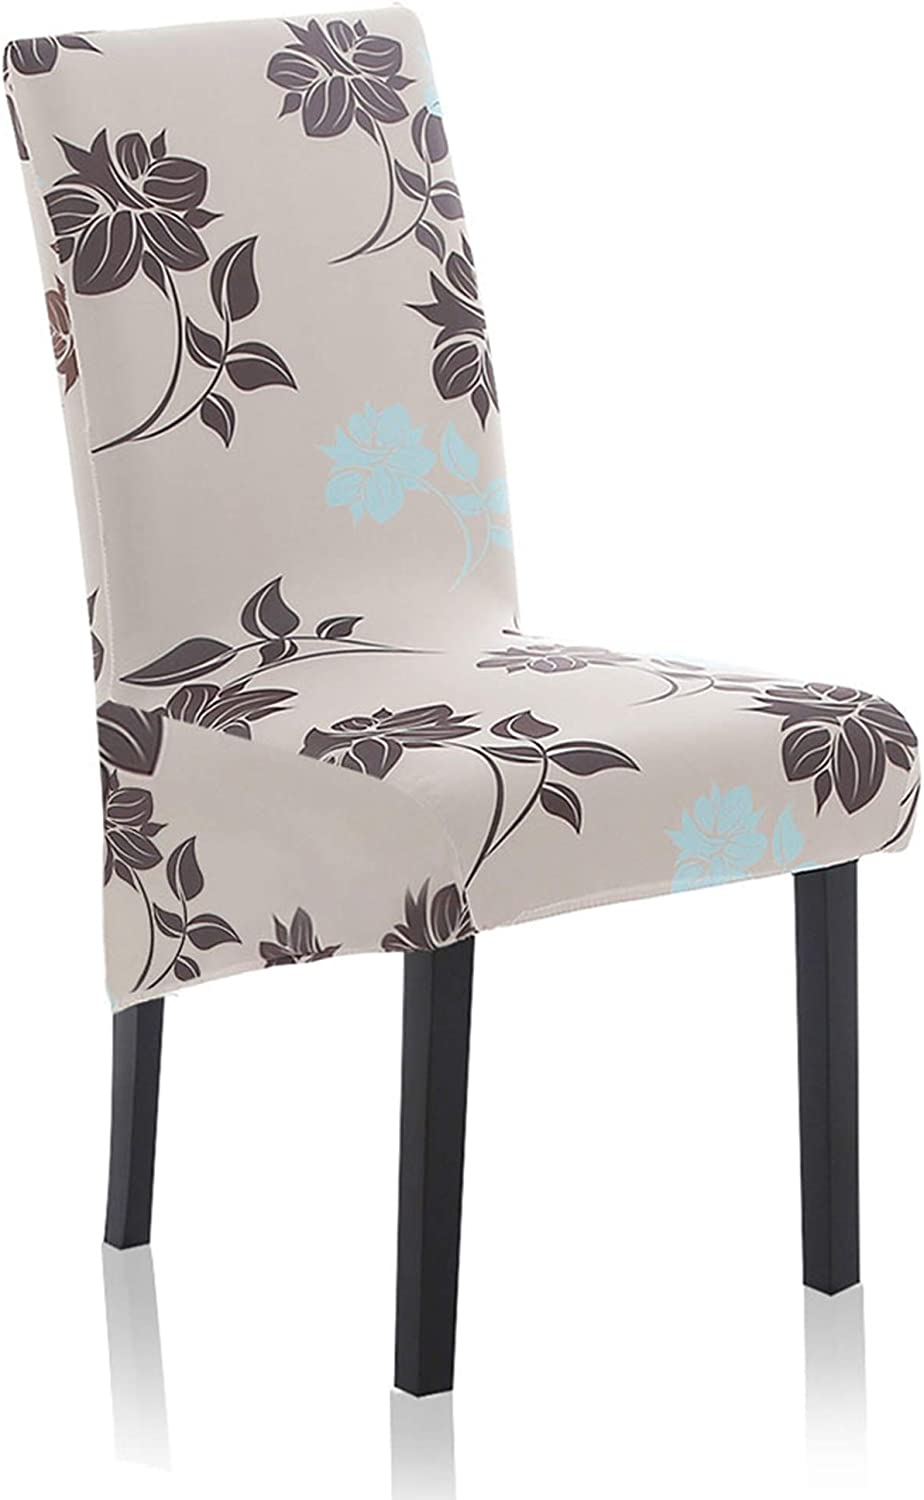 Stretch Dining Chair Slipcovers, XL/Oversized Removable Washable Soft  Spandex Extra Large Dining Room Chair Covers for Kitchen Hotel Table  Banquet